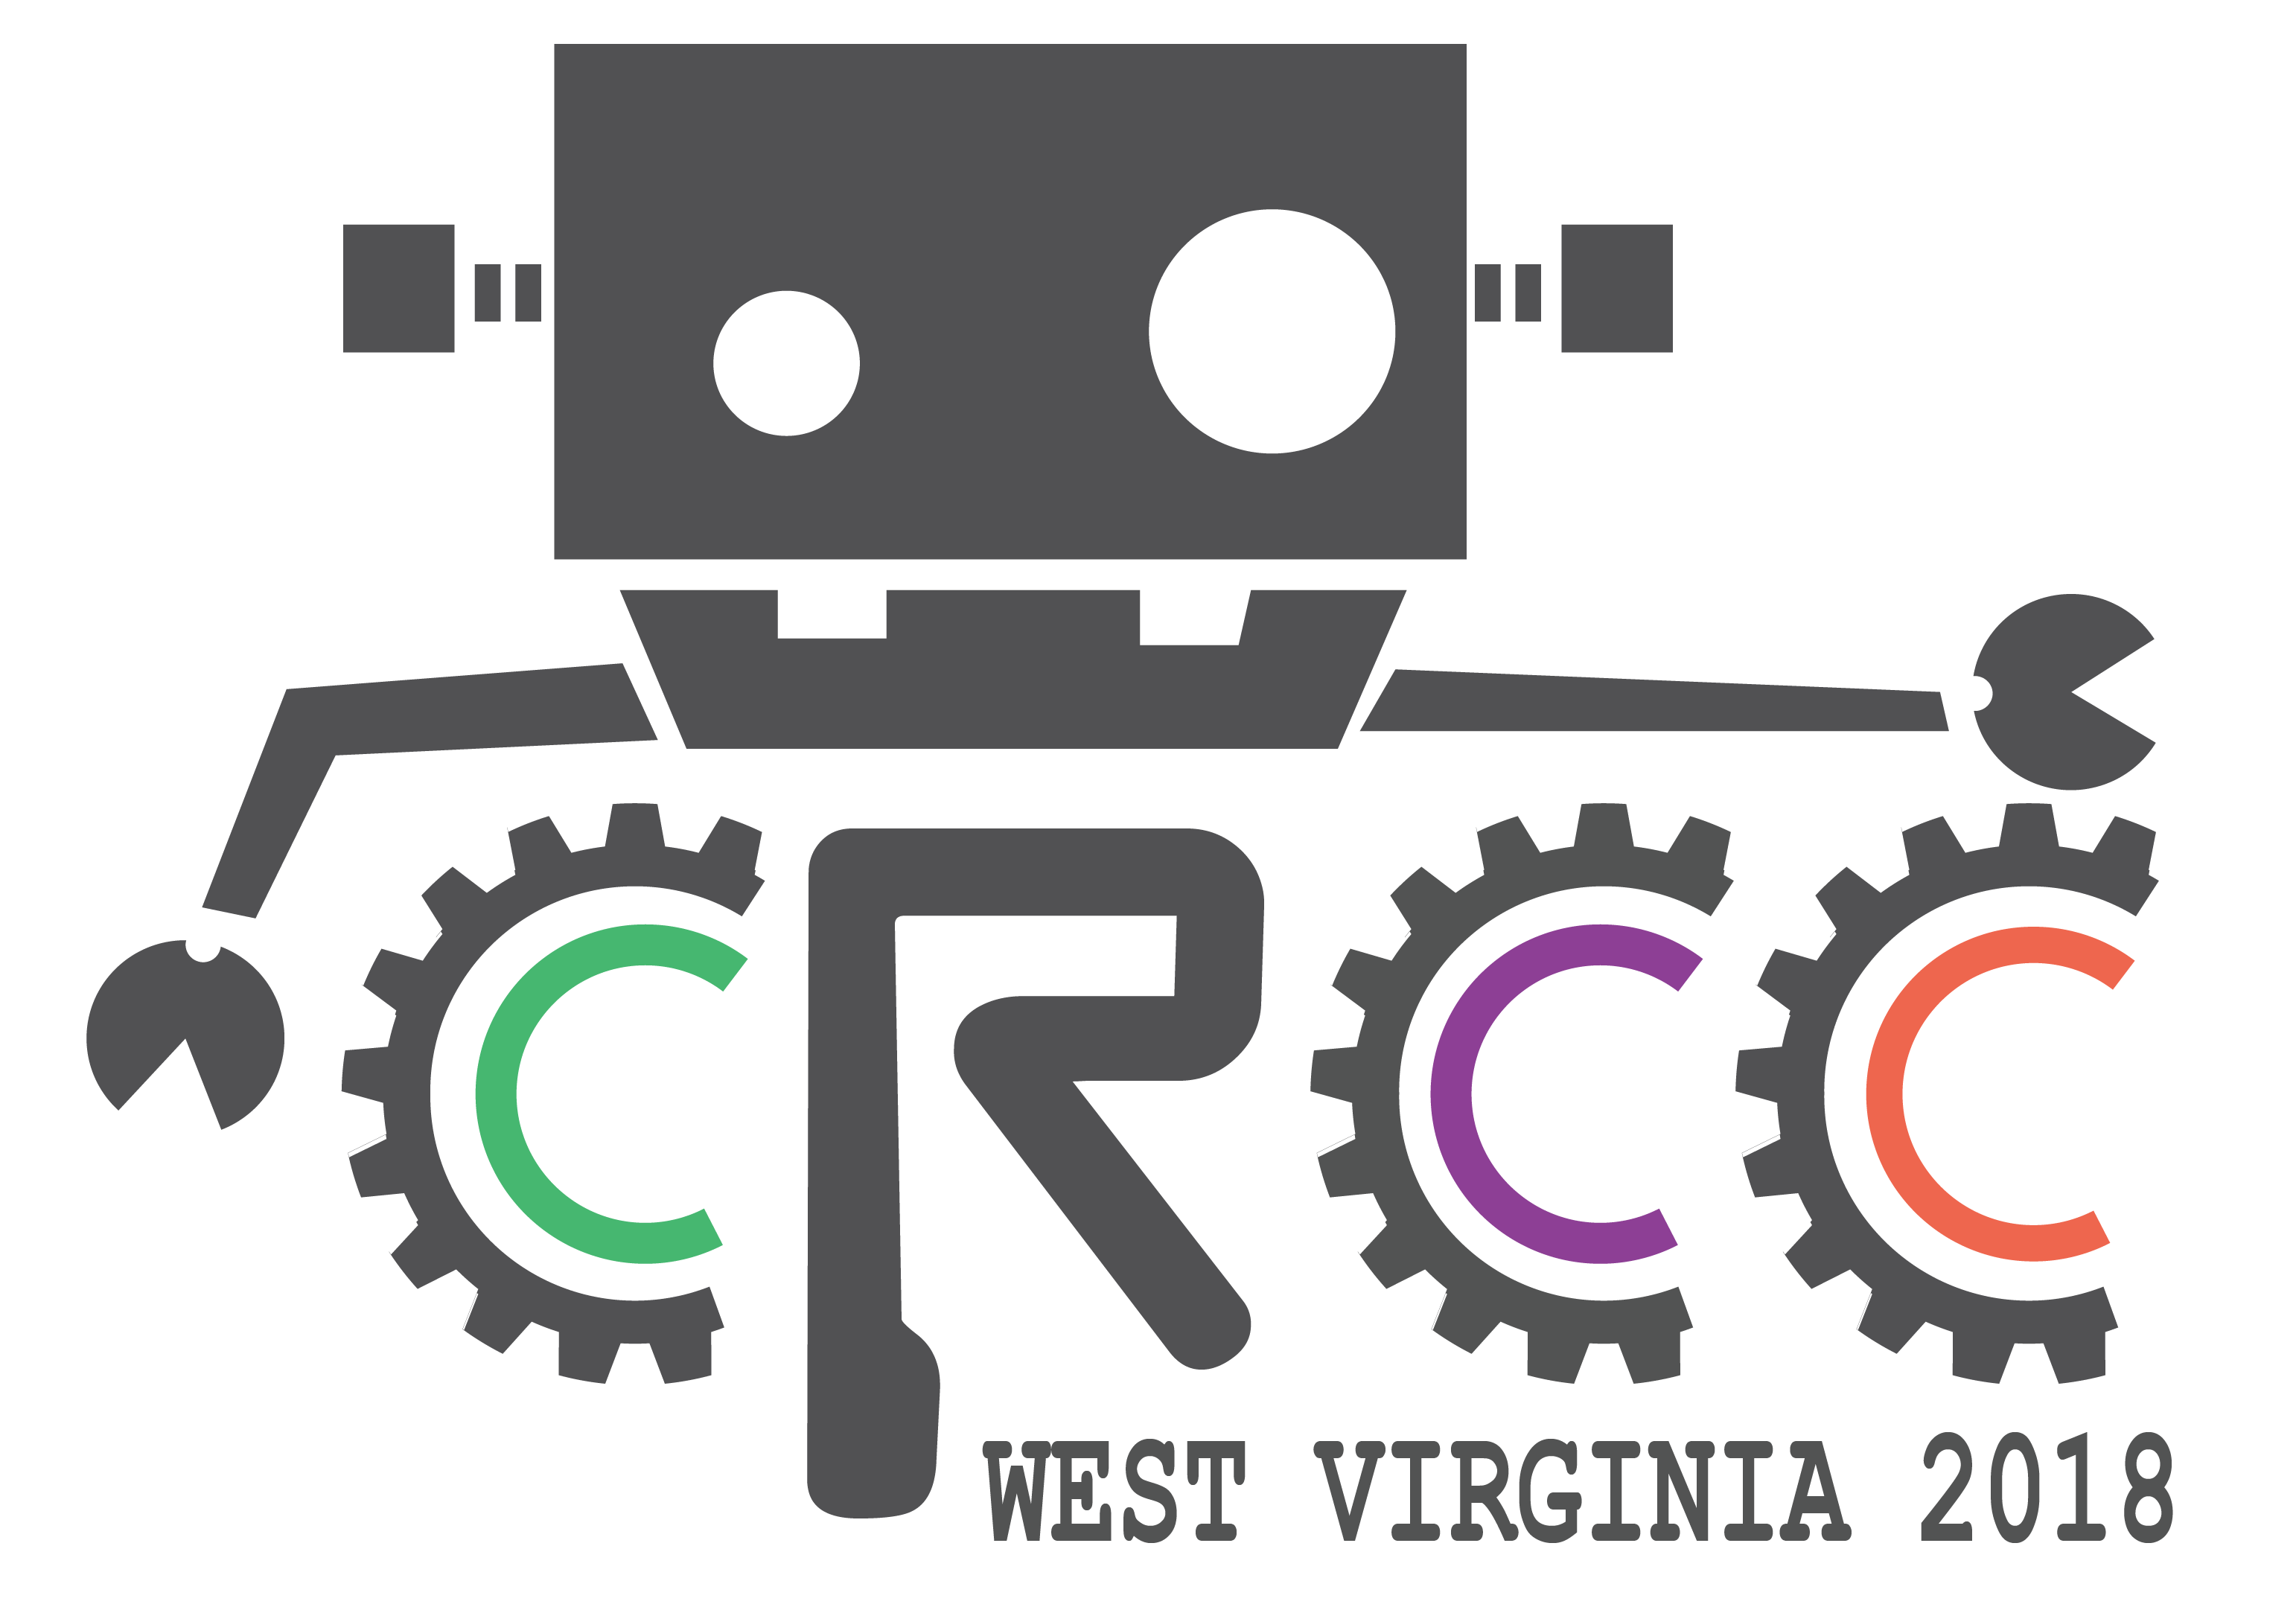 Up to 60 WV Middle Schoolers to Advance to Final Round in Cyber Robotics Coding Competition